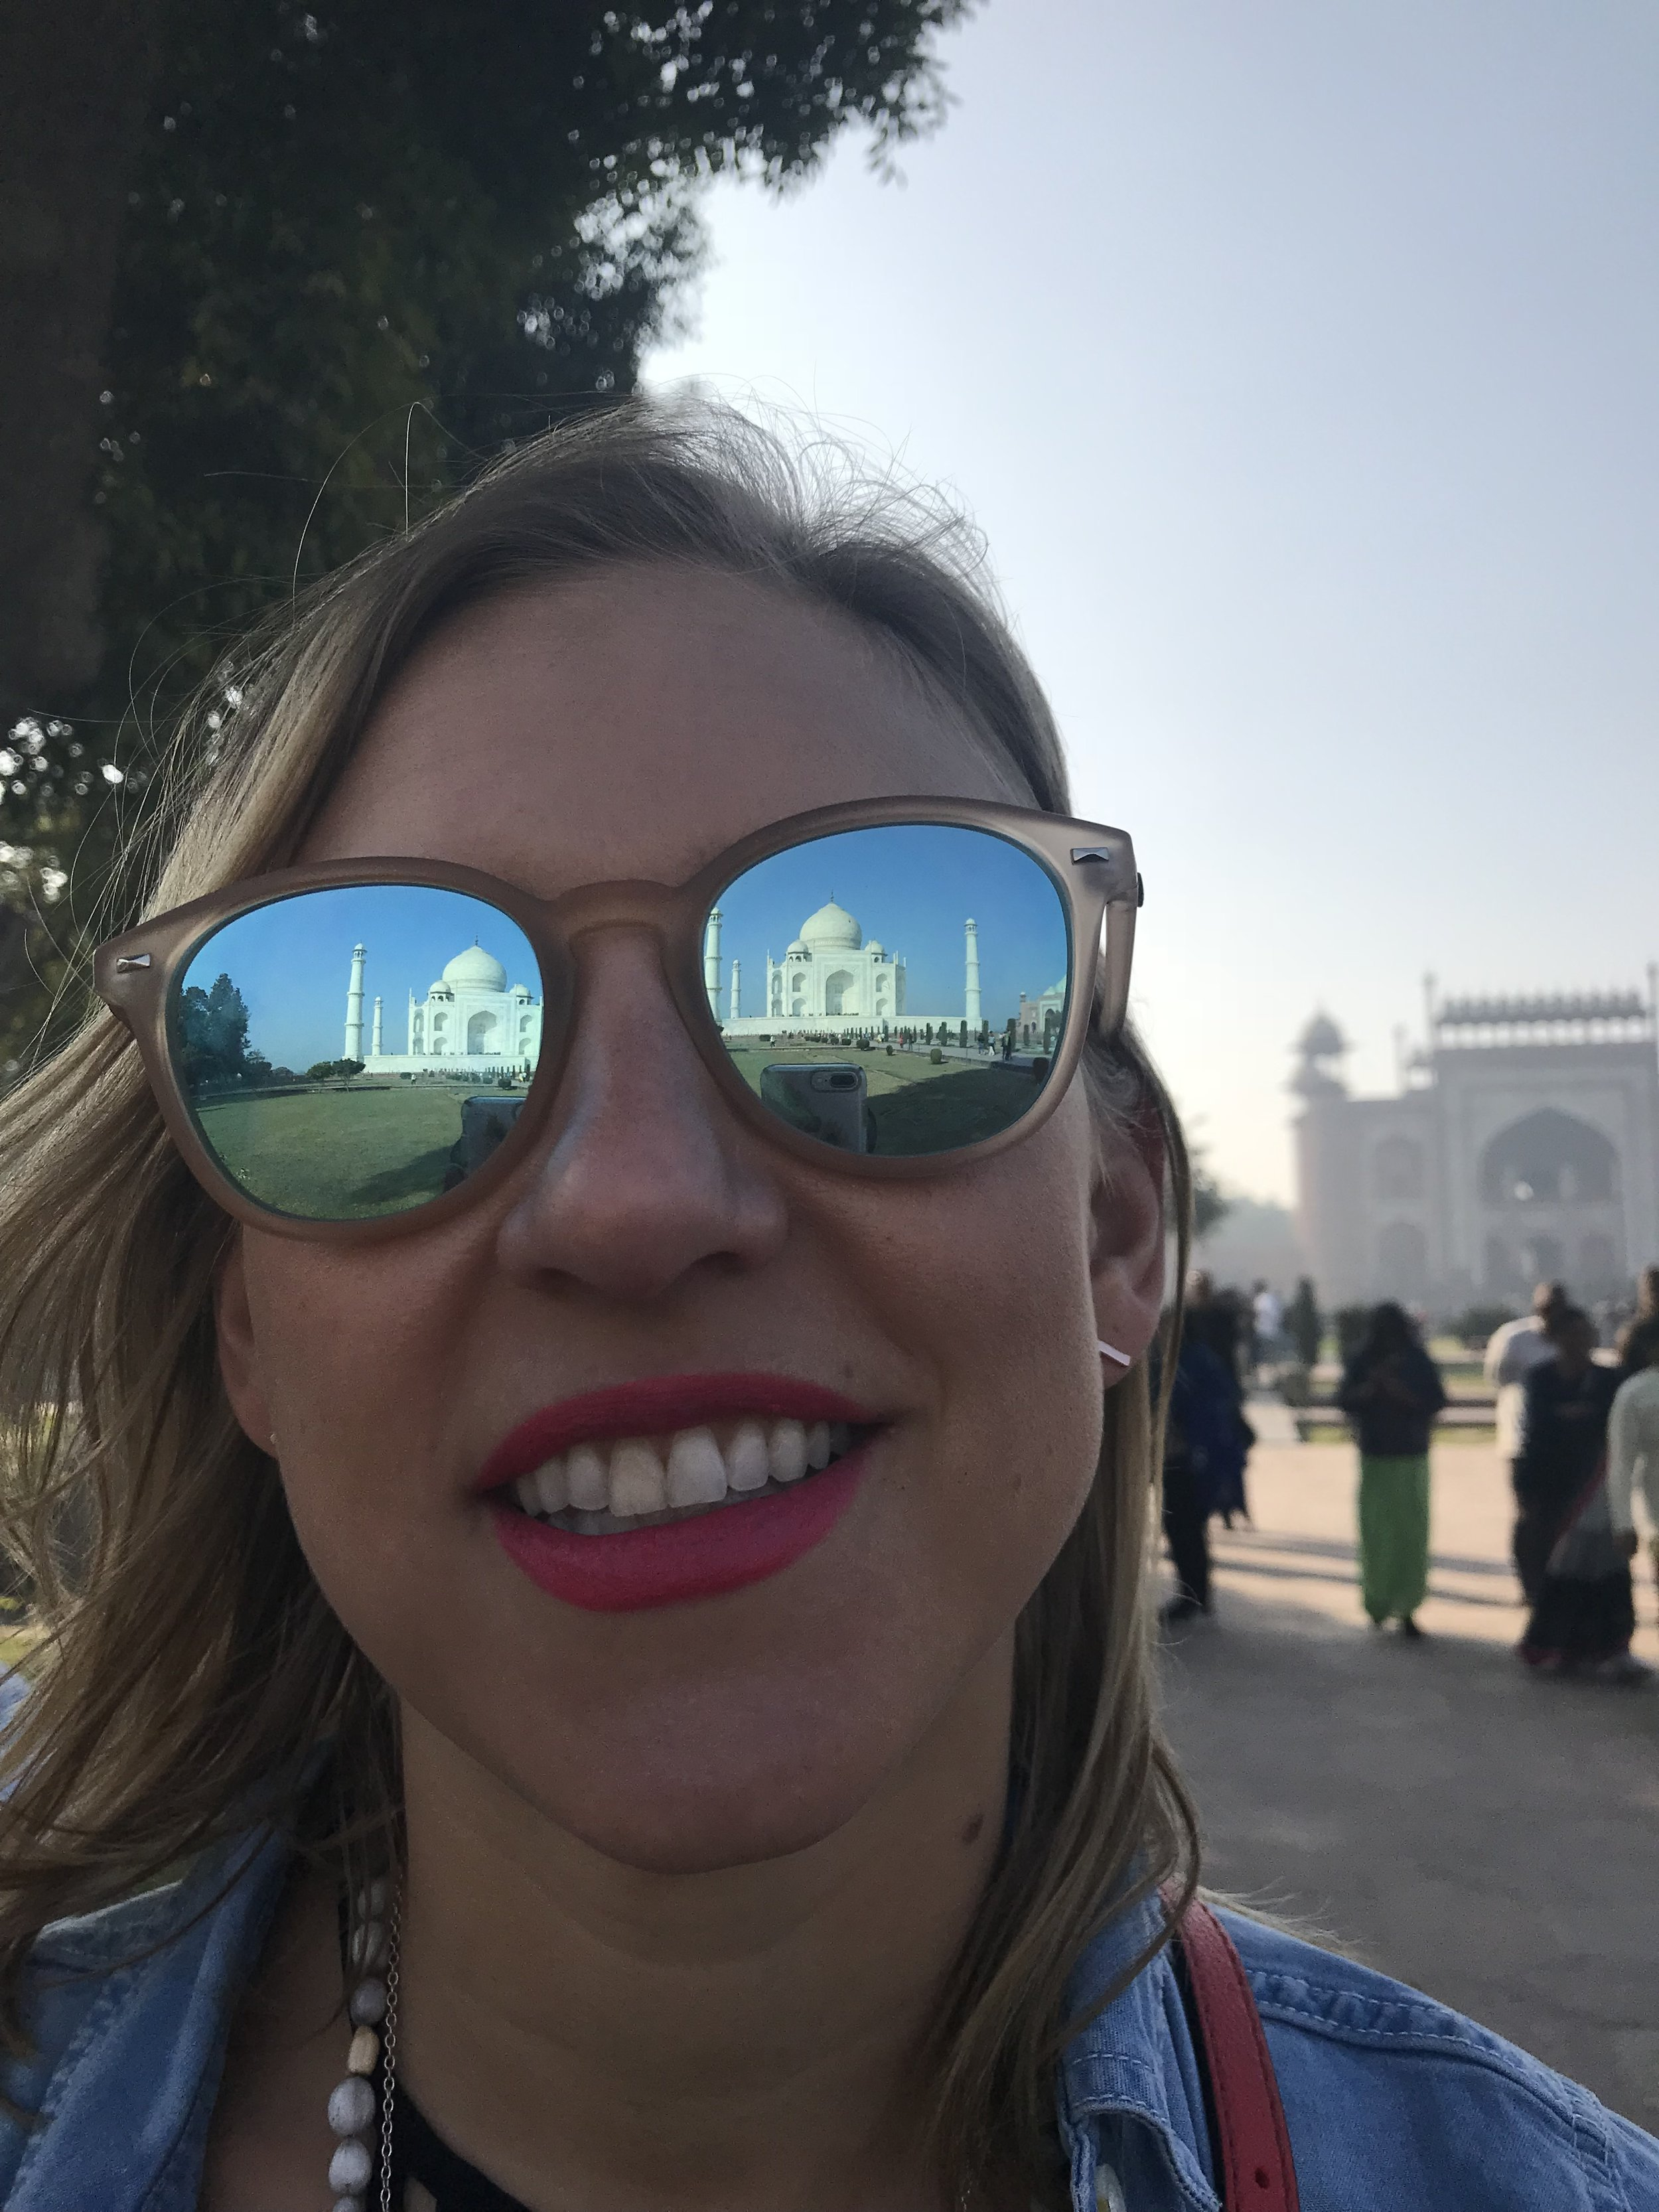 Got the Taj in my eyes - Thanks to our tour guide who fancied himself a photographer :)